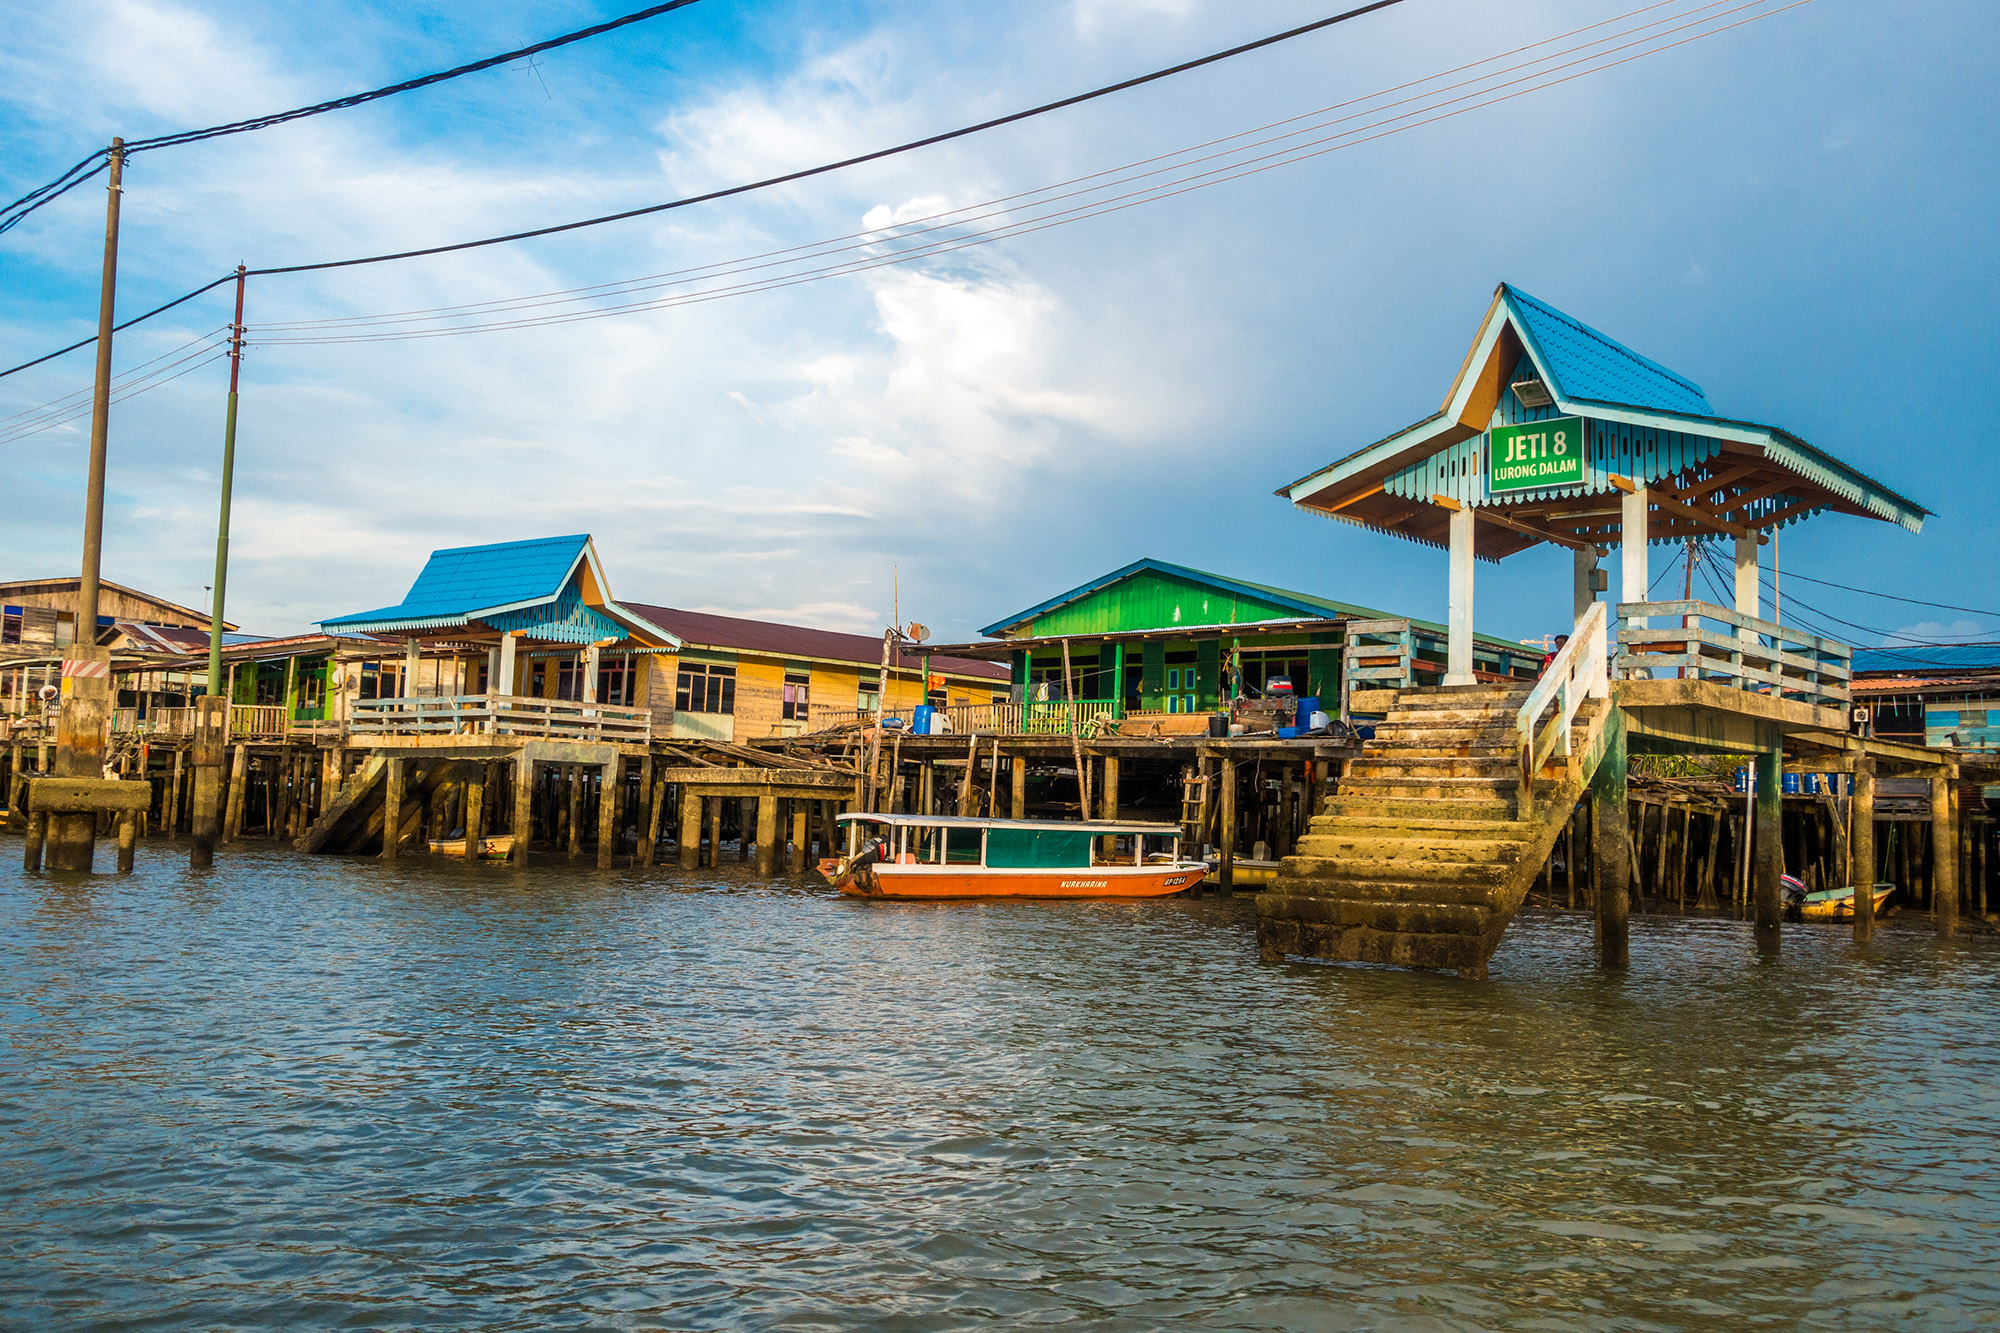 Wooden steps and shacks with coloured roofs on the water at Kampong Ayer